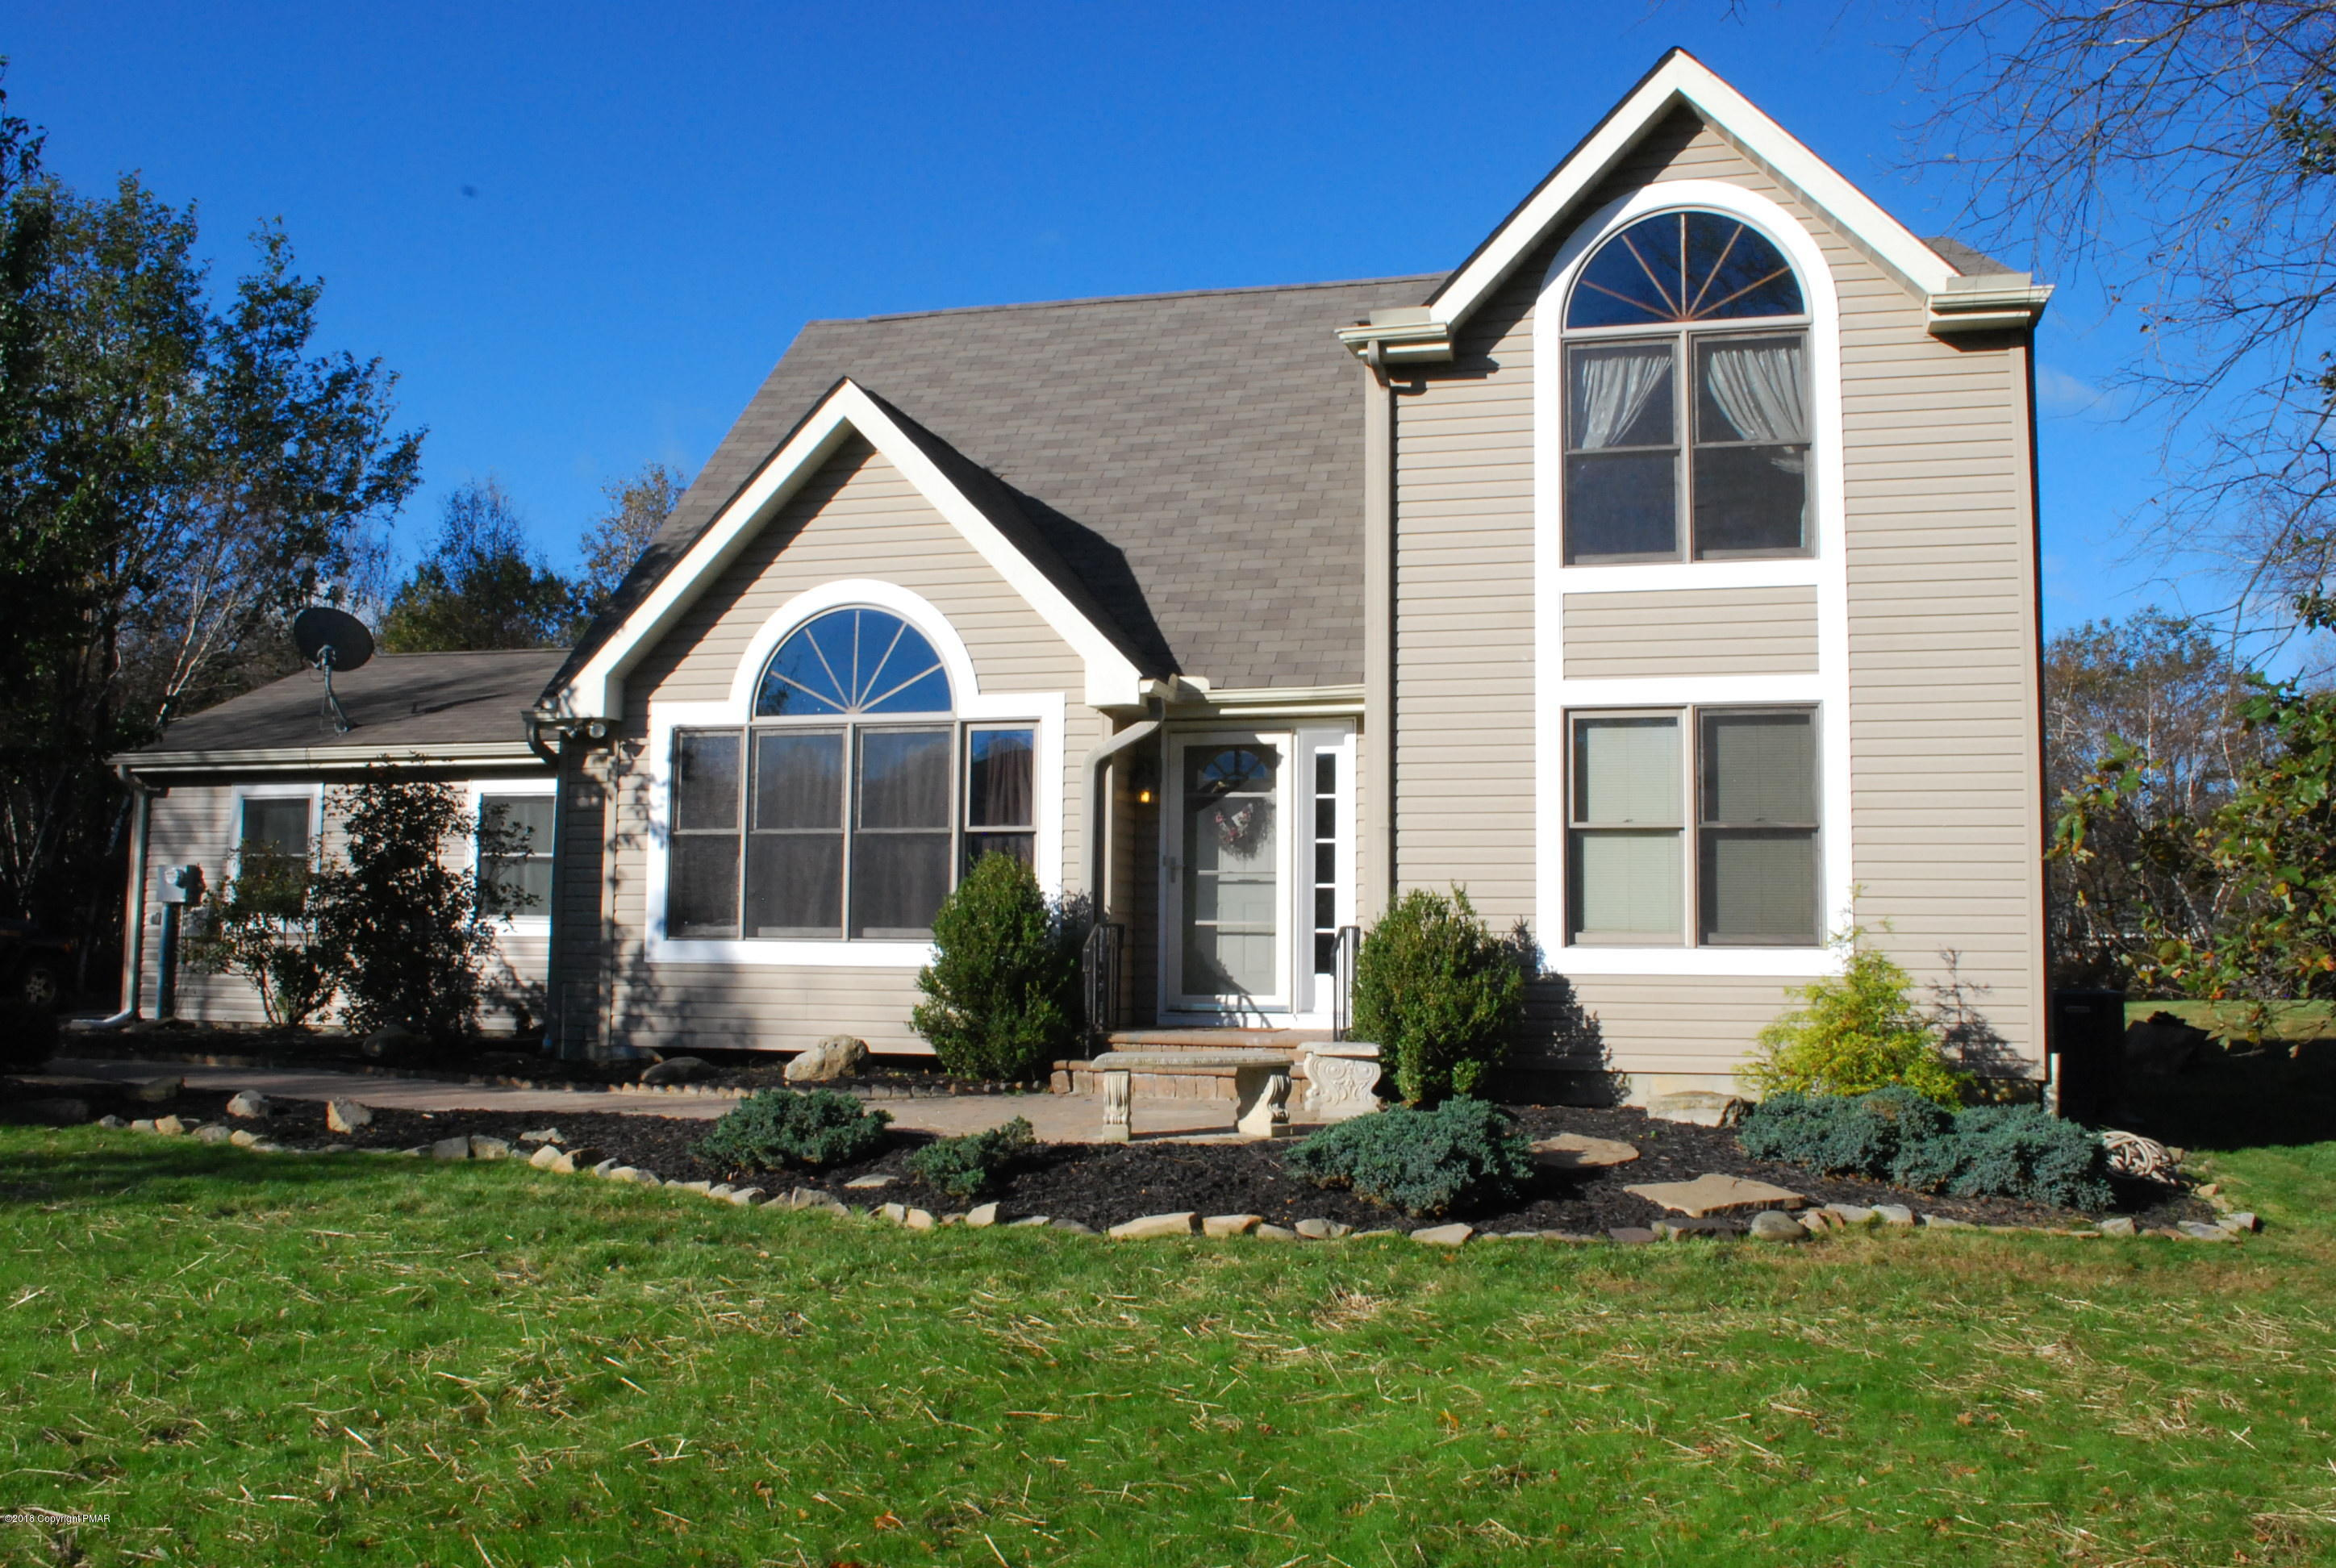 1218 Quiet Hills Ln, Effort, PA 18330